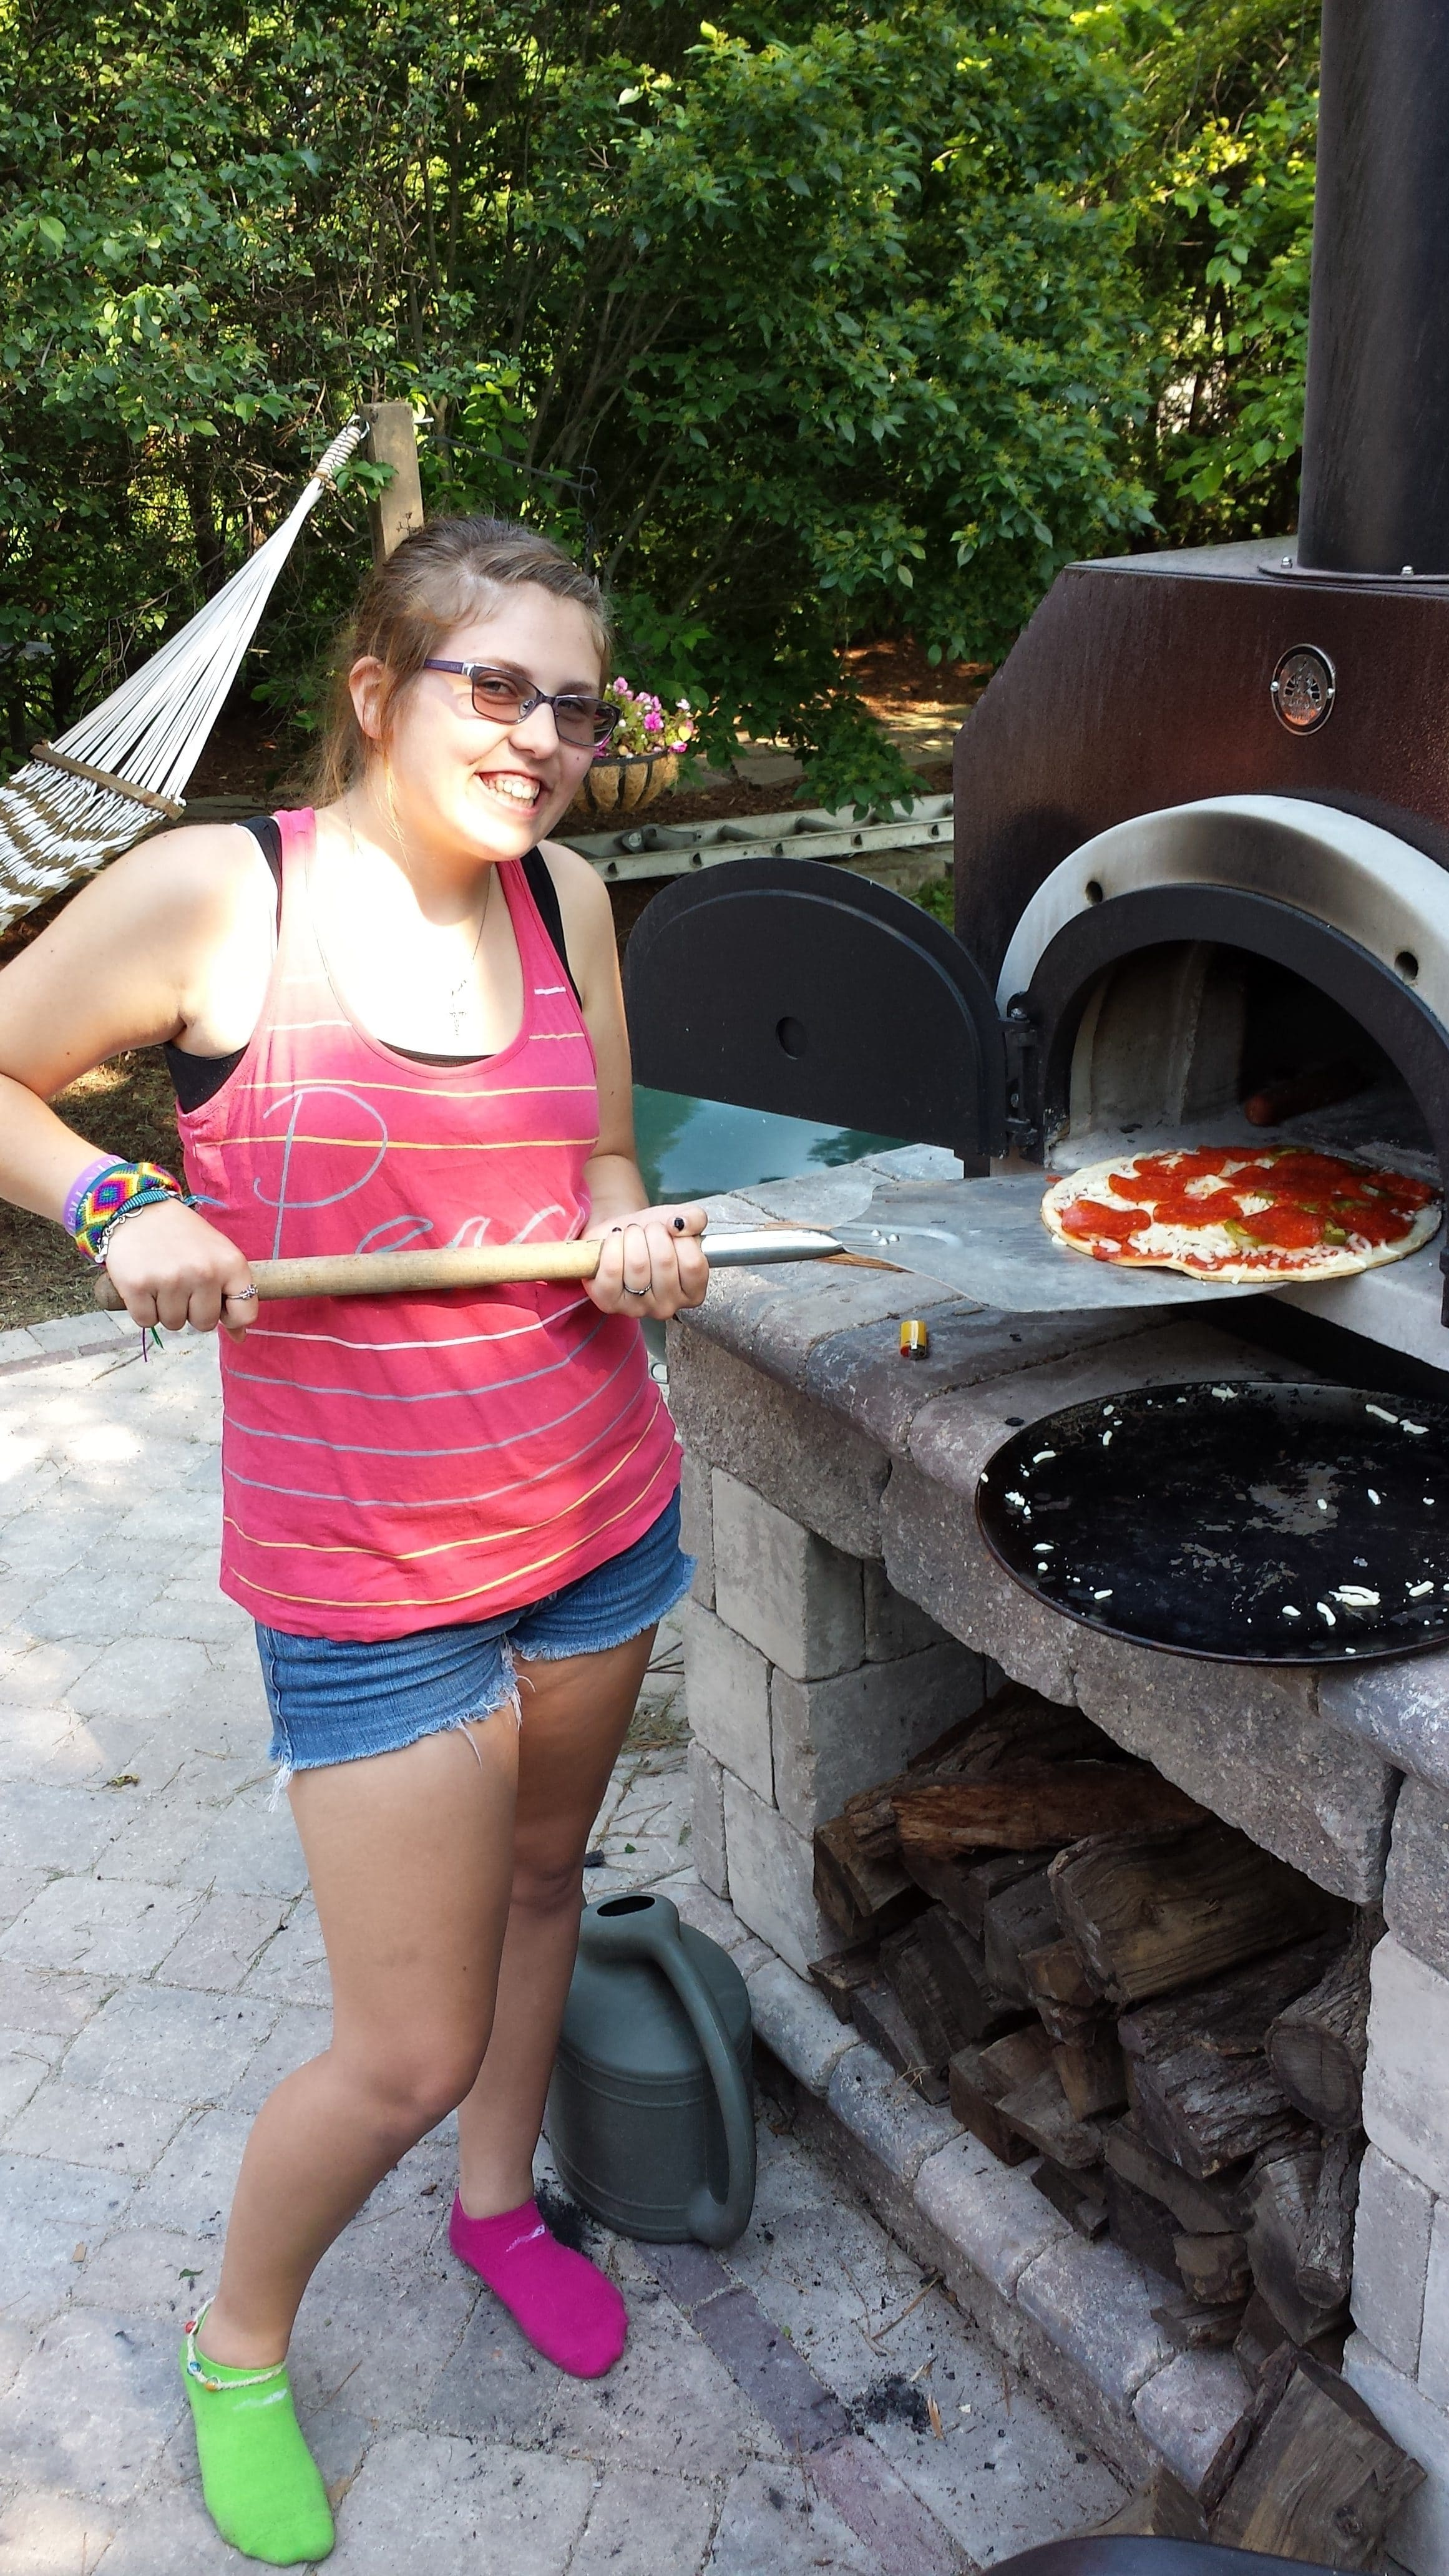 making pizza in a pizza oven